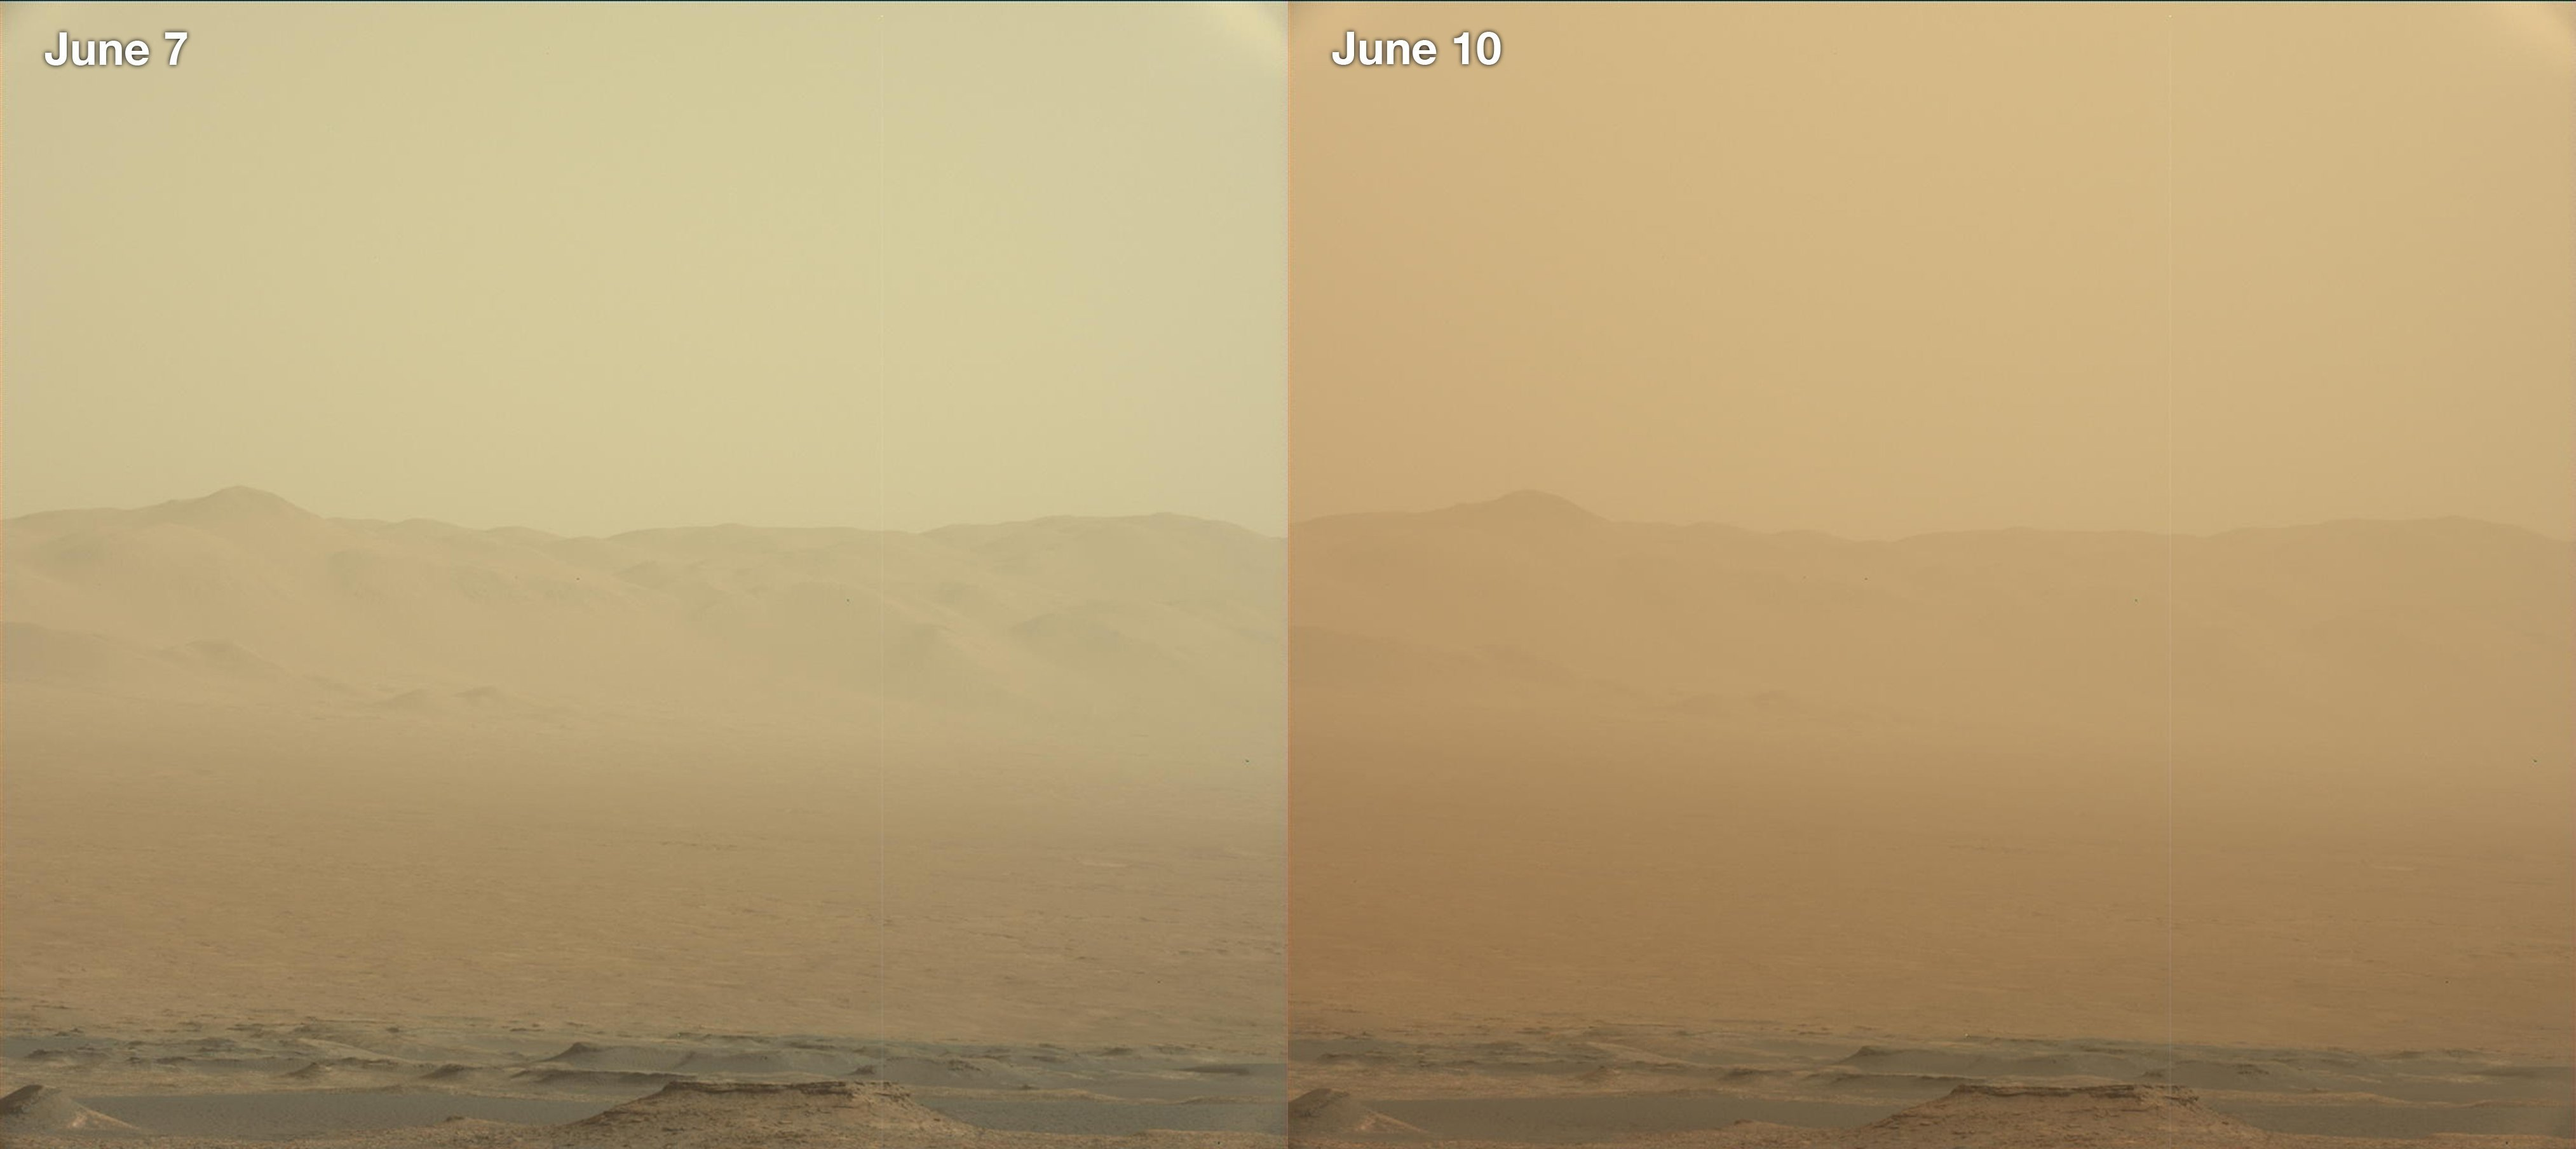 These two views from NASA's Curiosity rover -- from June 7, left, and June 10 -- show how dust has increased over three days from a major Martian dust storm.